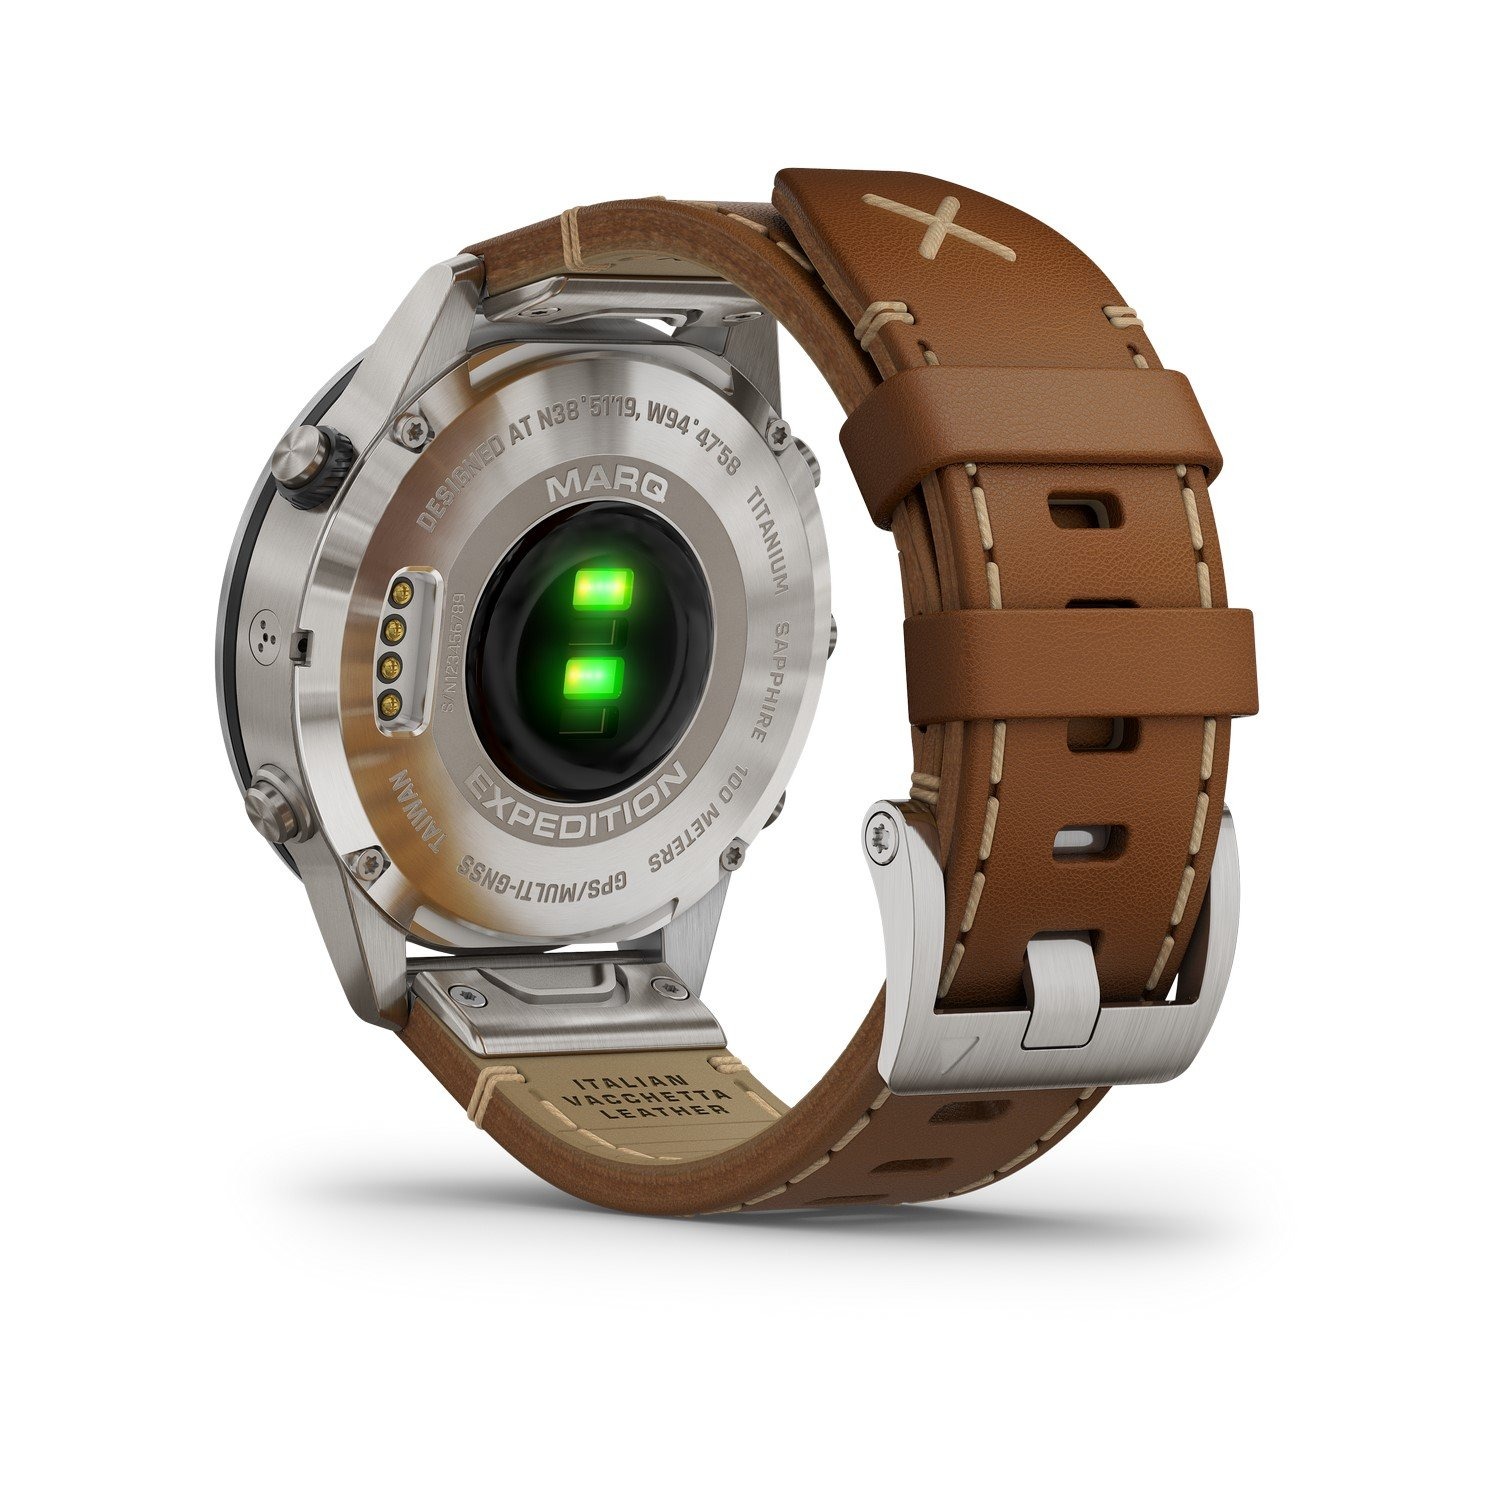 Montre Garmin Marq Expedition vue 3